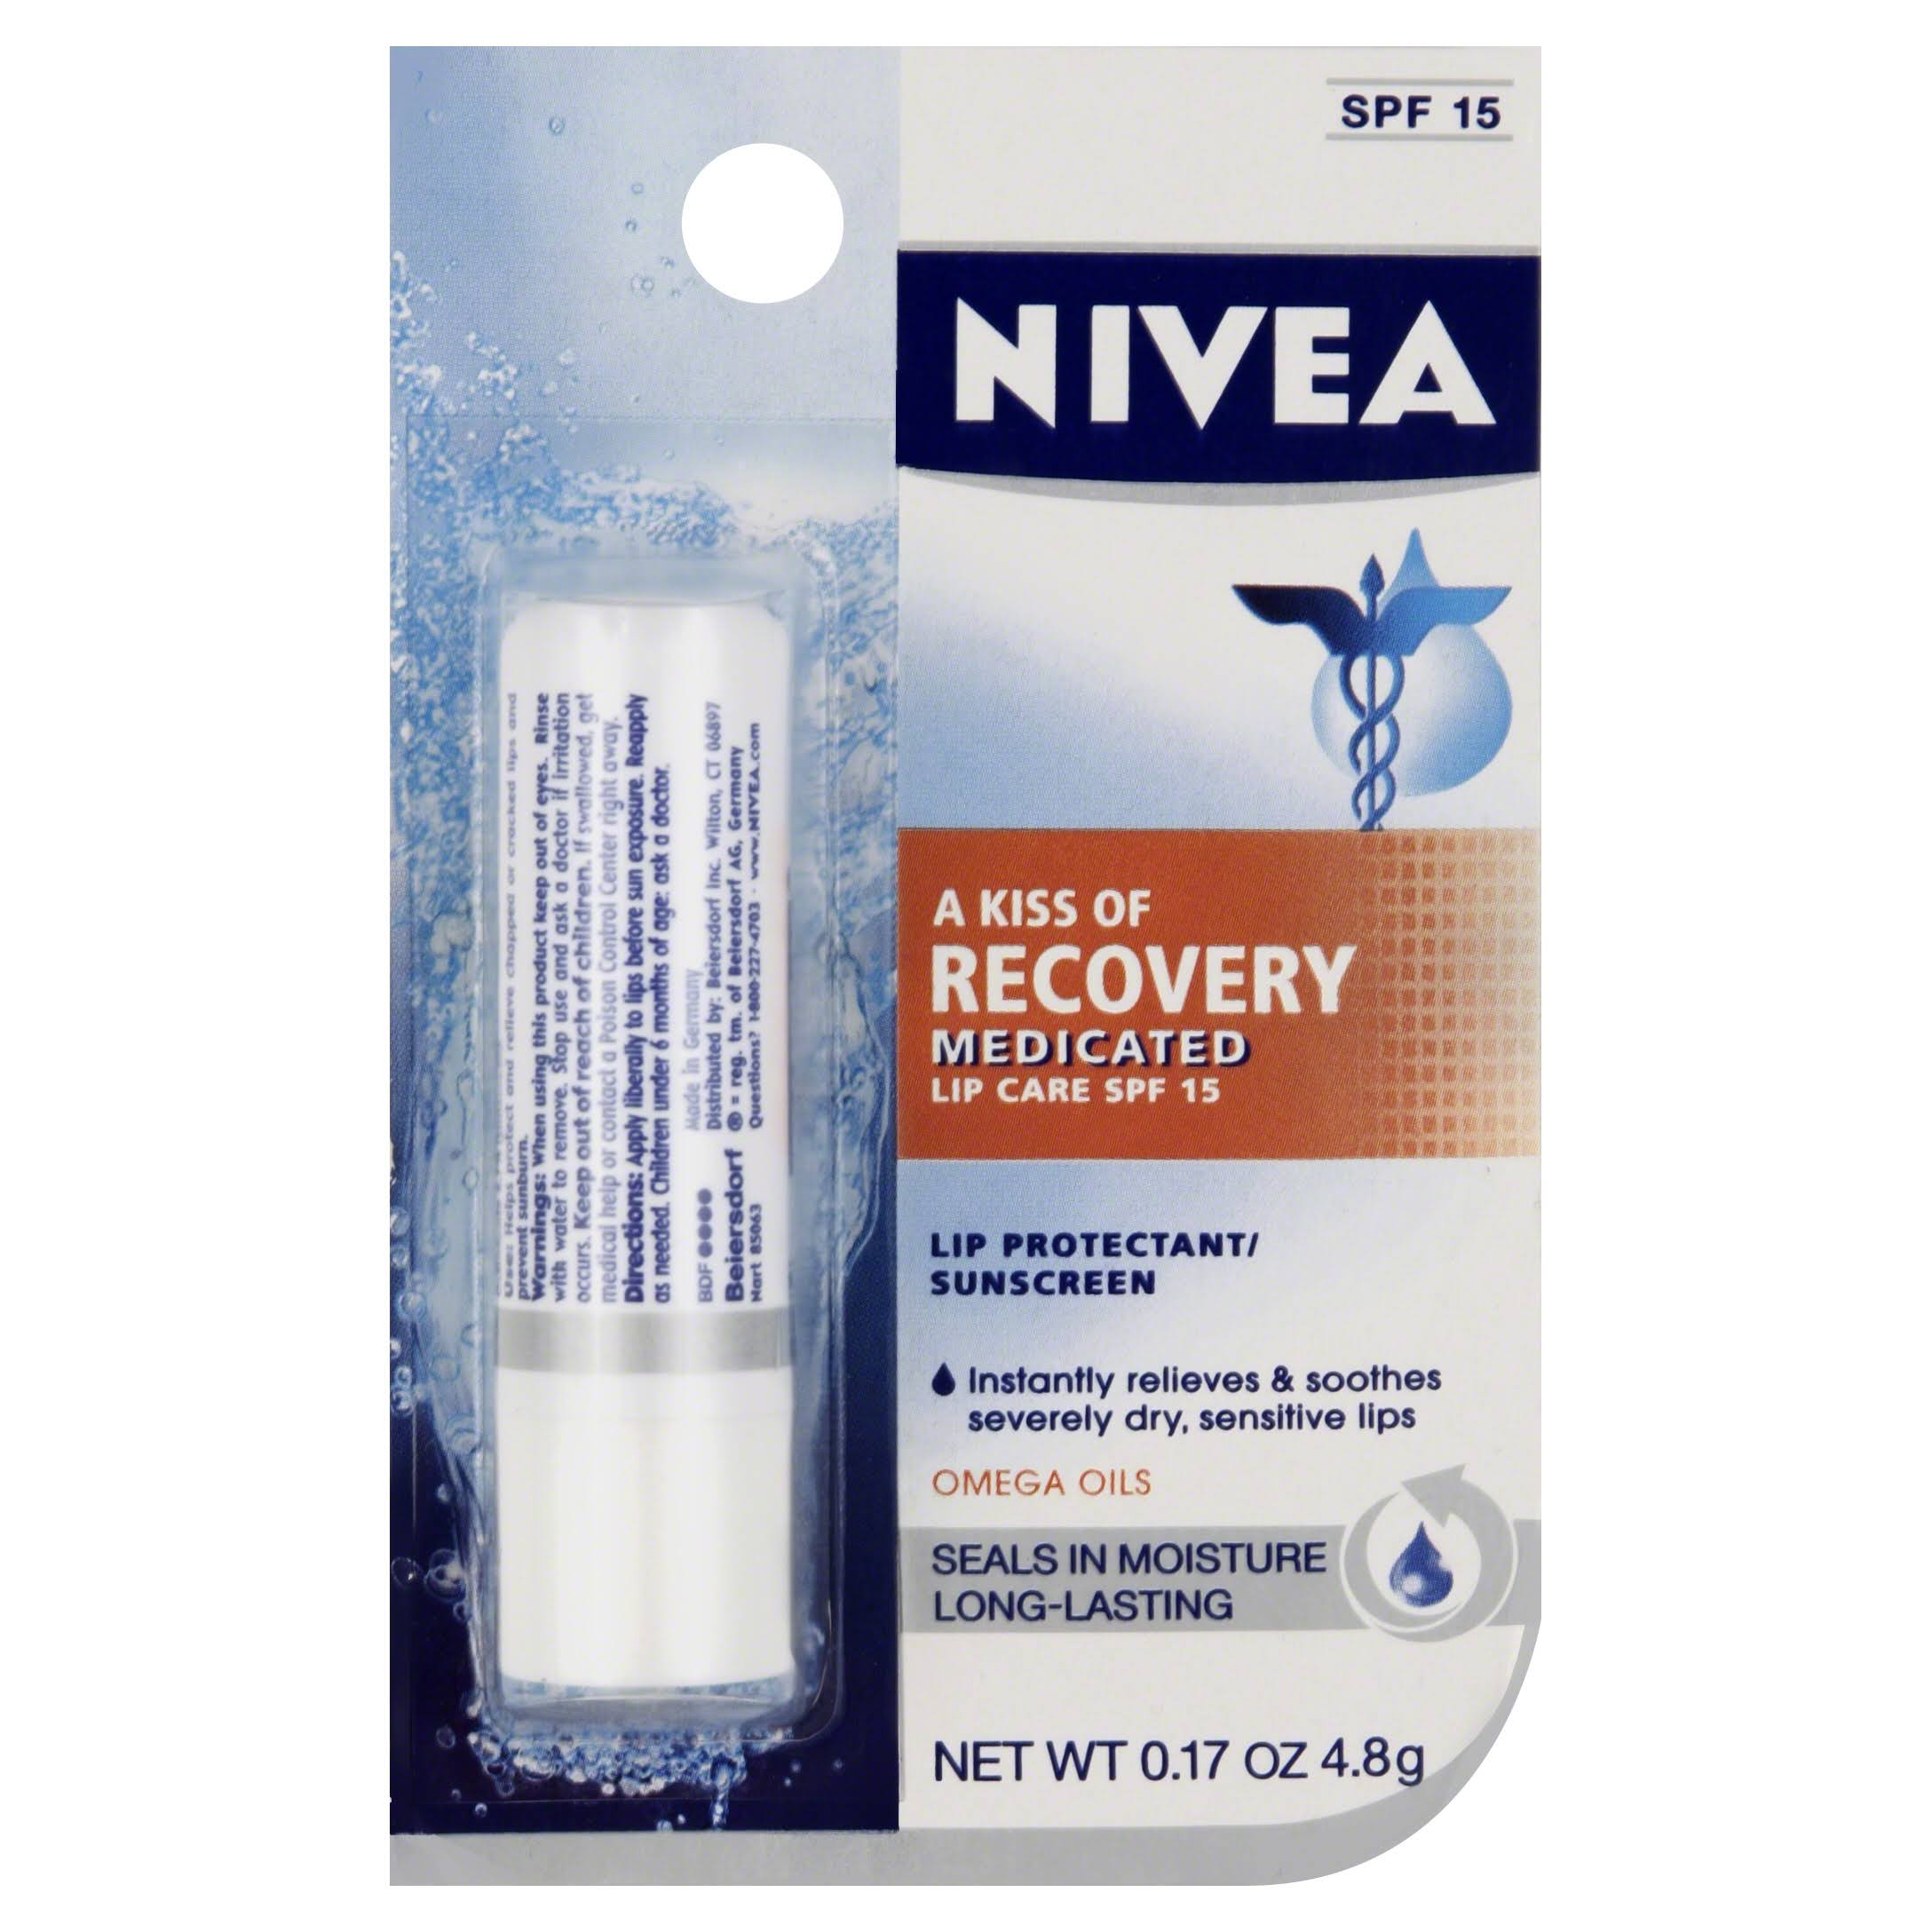 Nivea A Kiss Of Recovery Medicated Lip Care SPF 15 - 0.17oz